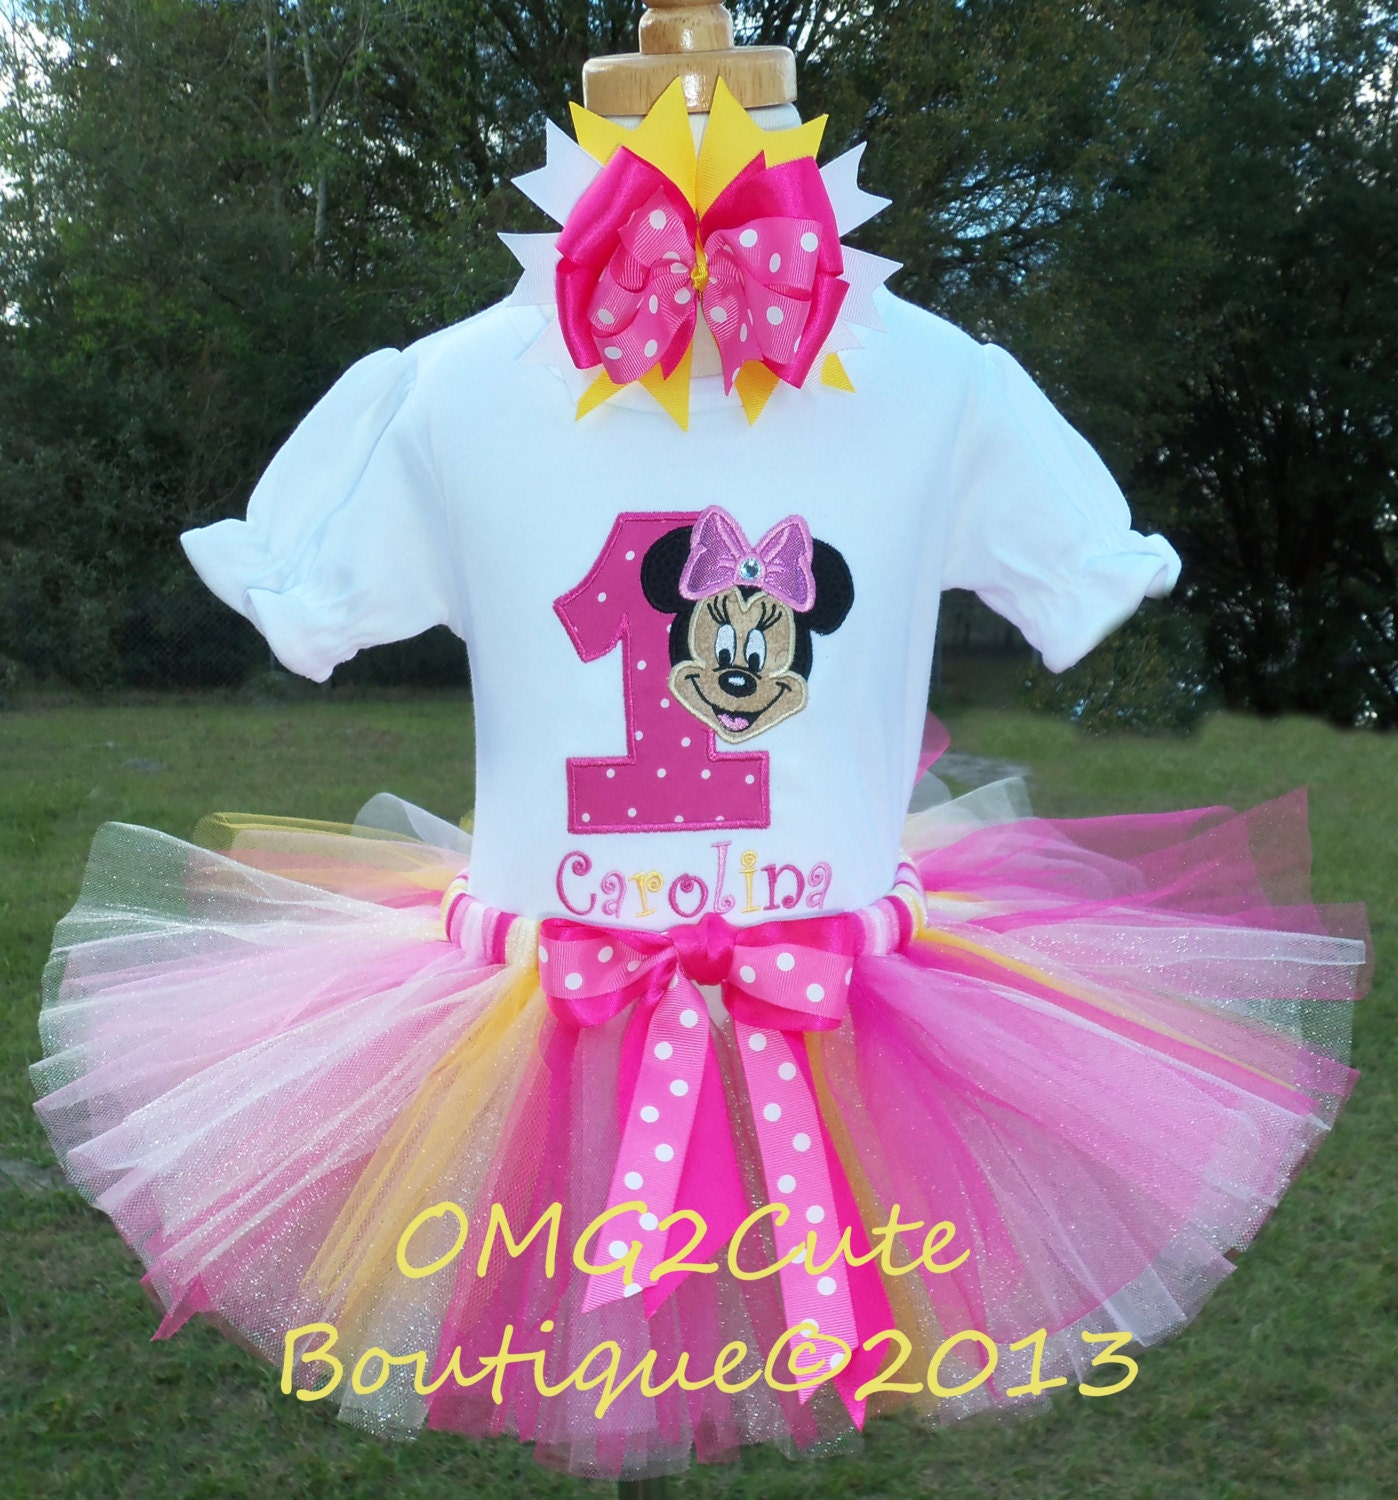 Birthday Party Outfit: Minnie Mouse Birthday Outfit Yellow And Pink Includes Shirt